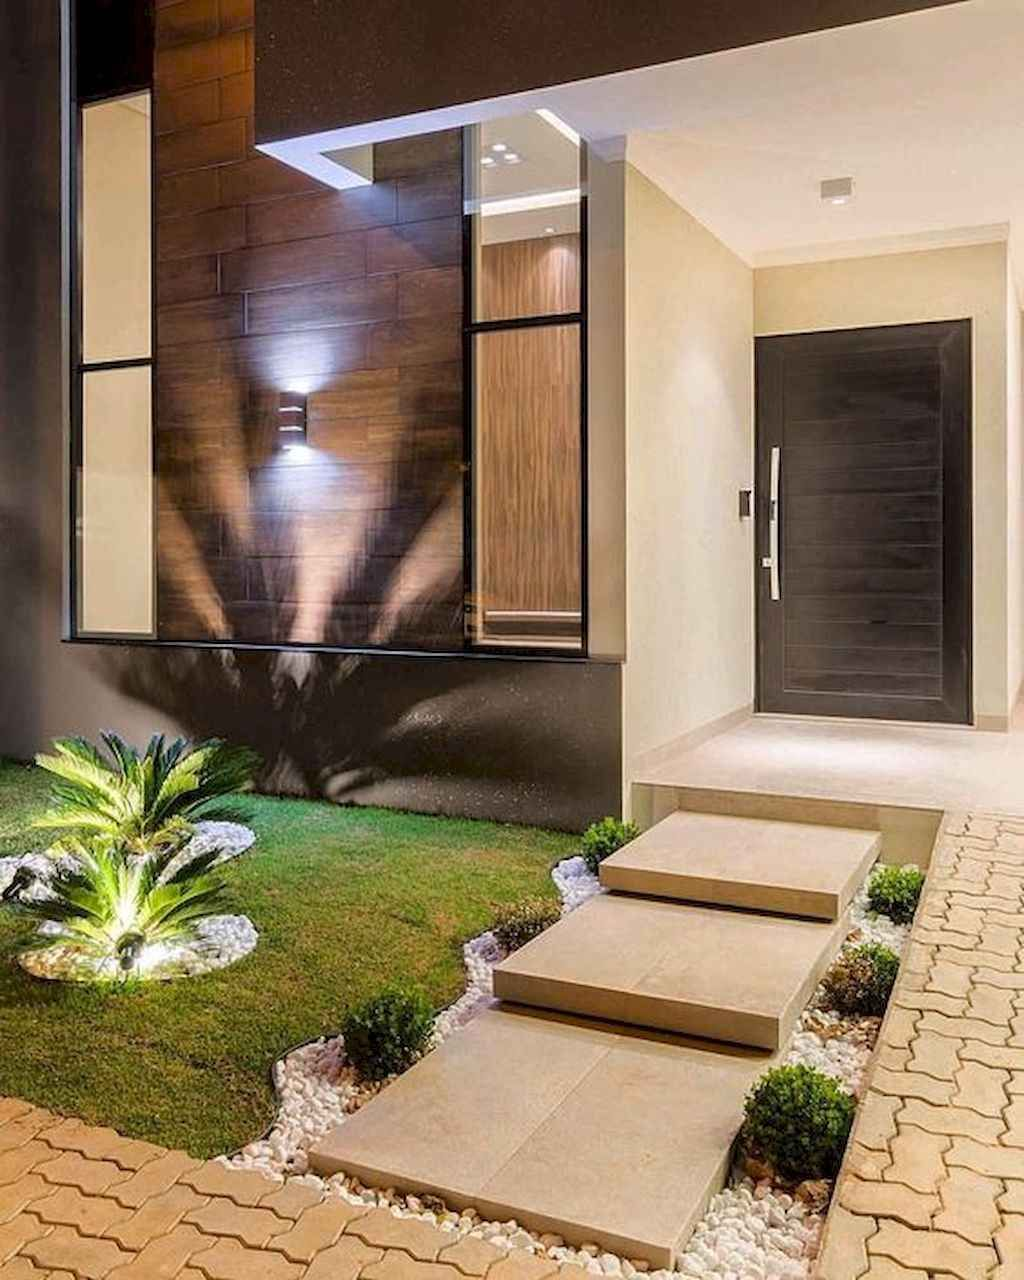 Garage Door Landscaping Ideas: 55 Fresh And Beautiful Front Yard Landscaping Ideas Low